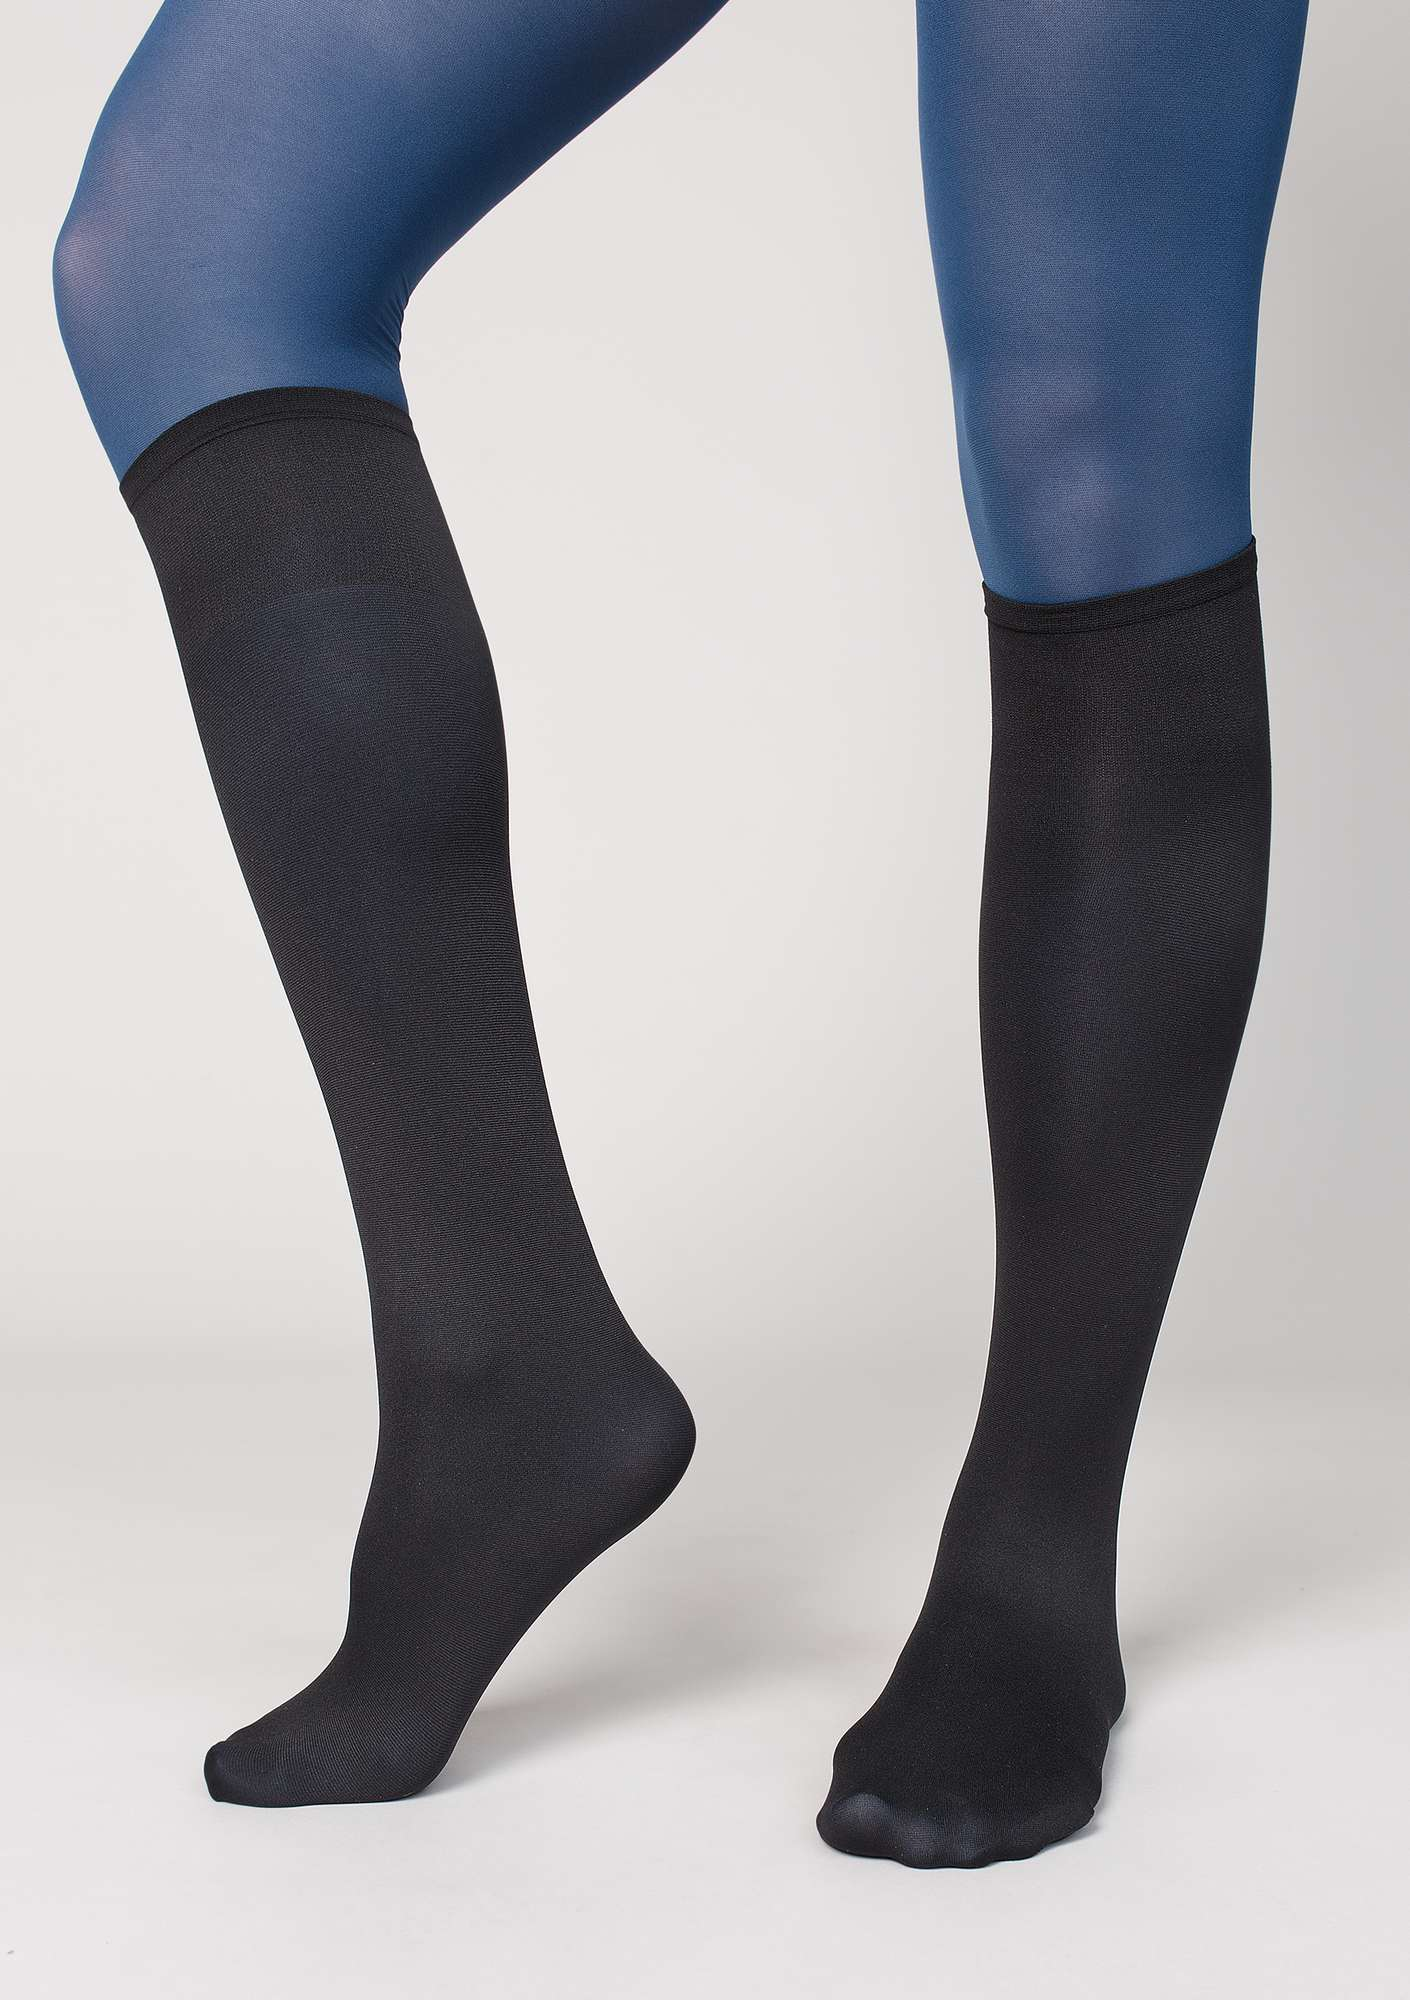 Knee-highs in recycled nylon black